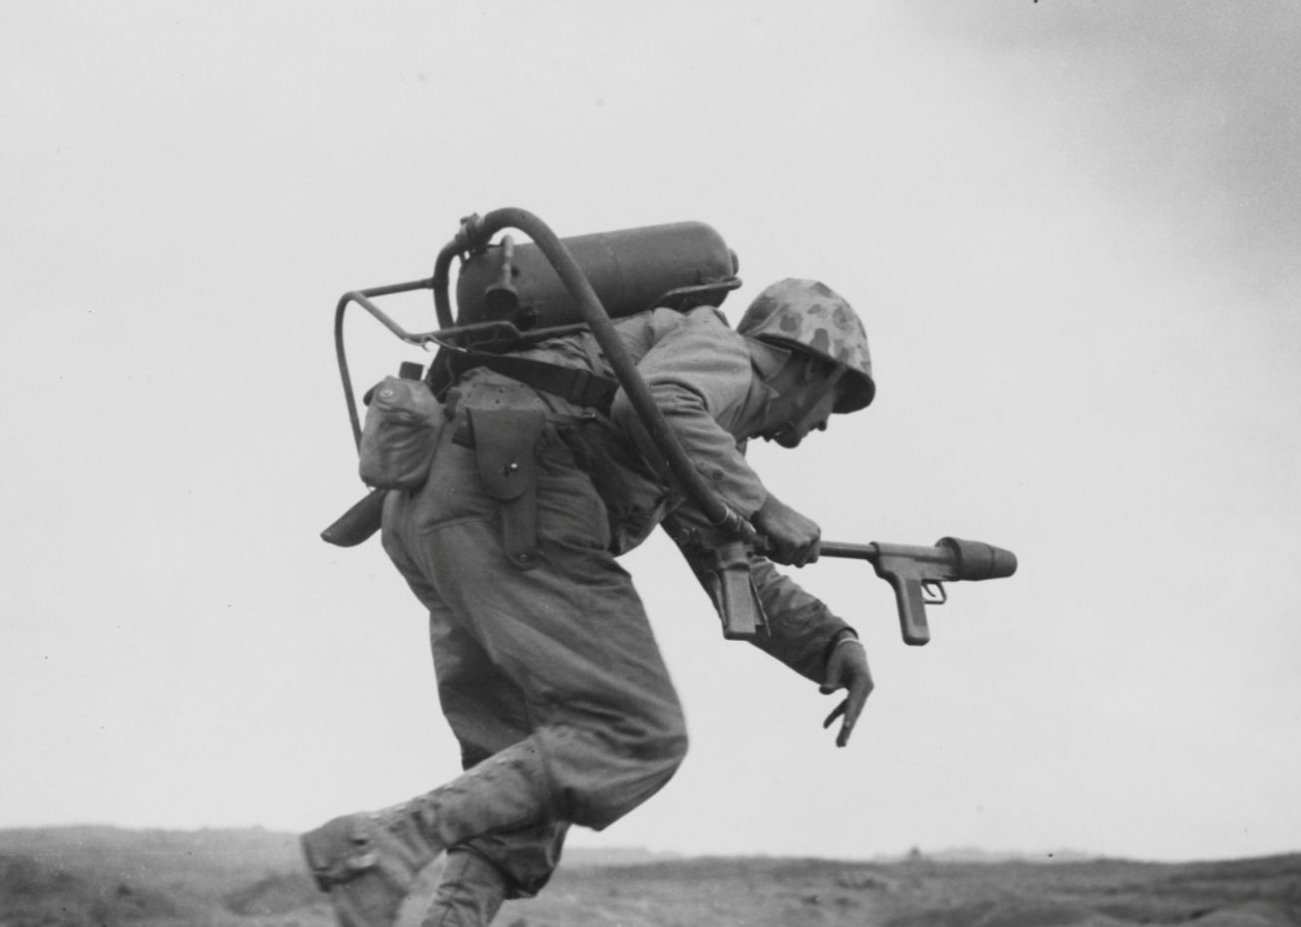 Why the U.S. Military Stopped Using Flamethrowers